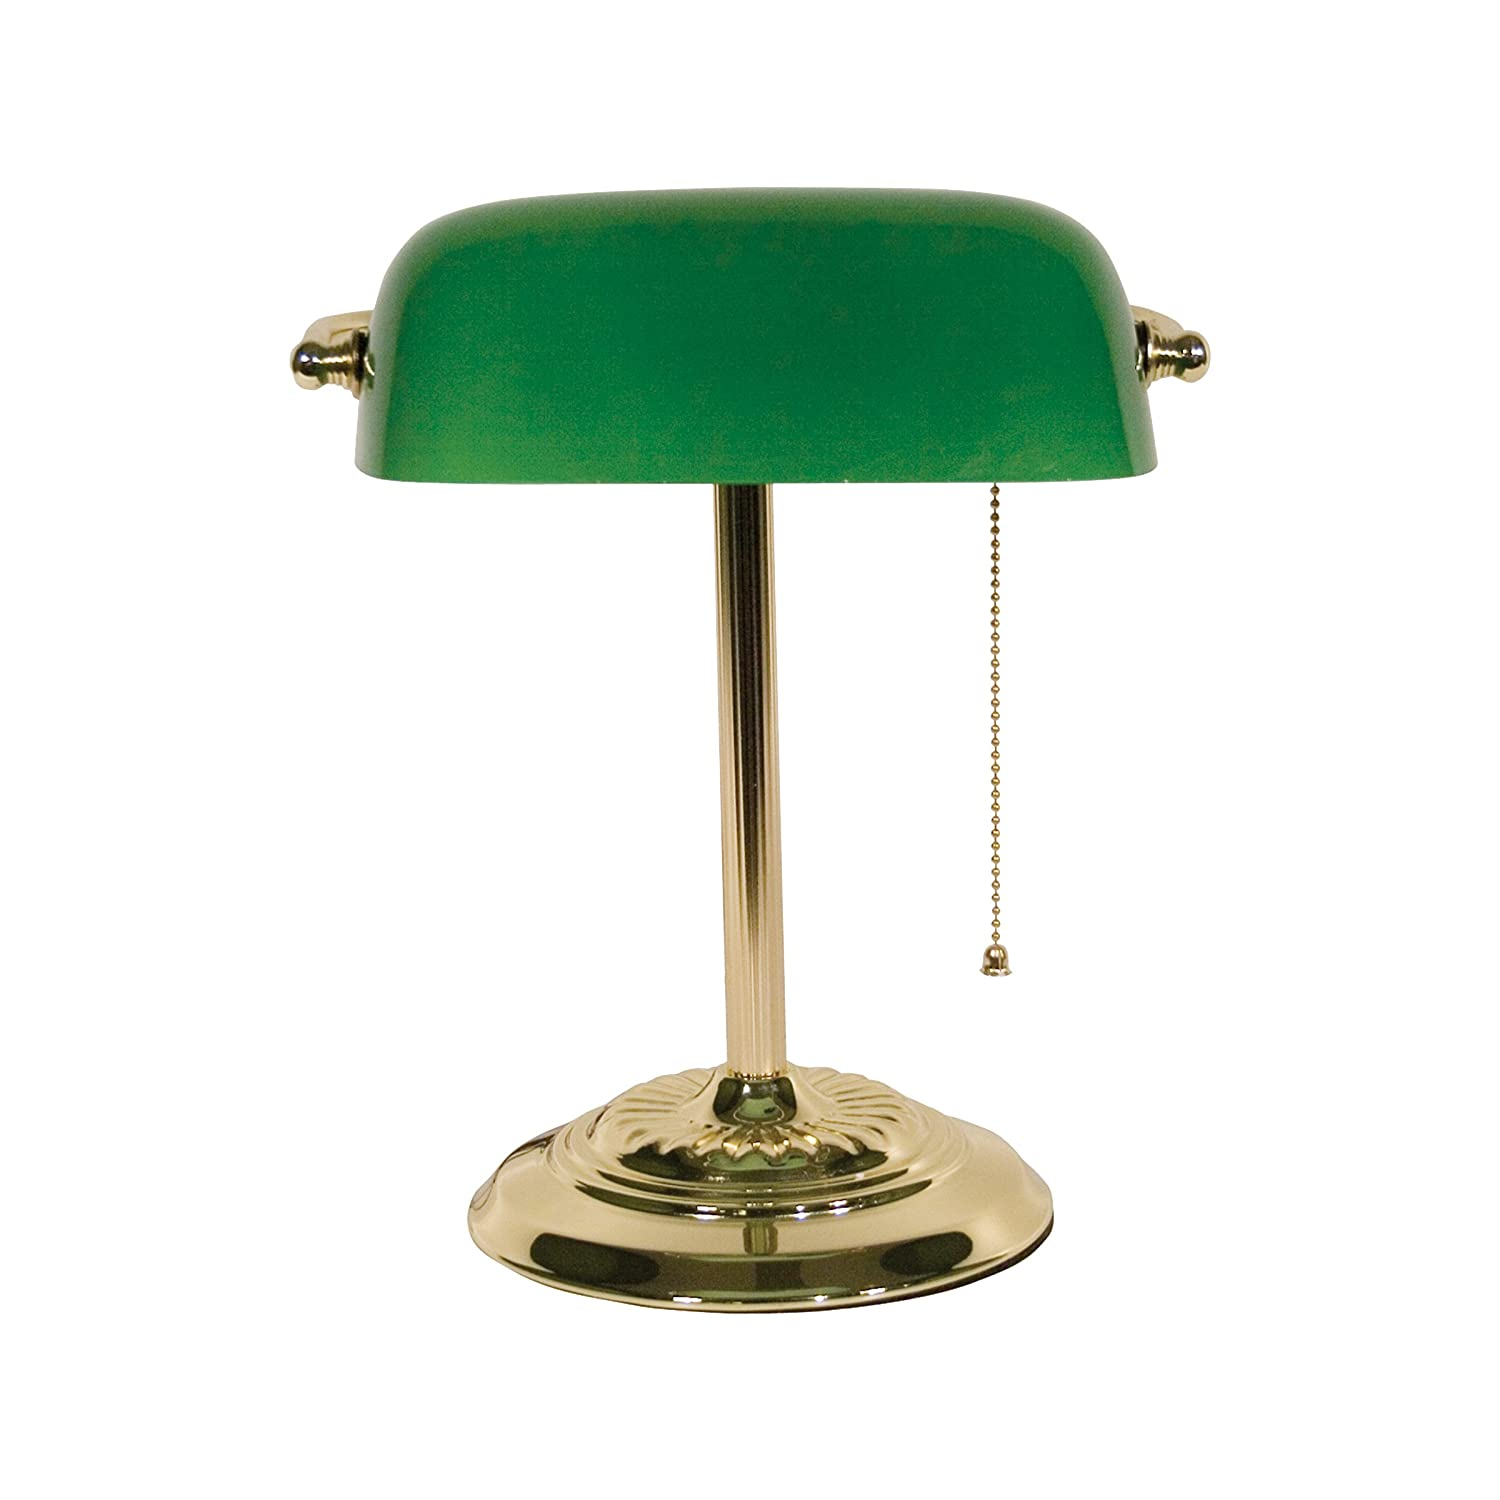 Amazon ledu l557br traditional bankers lamp 14 high brass amazon ledu l557br traditional bankers lamp 14 high brass base with green shade desk lamps office products aloadofball